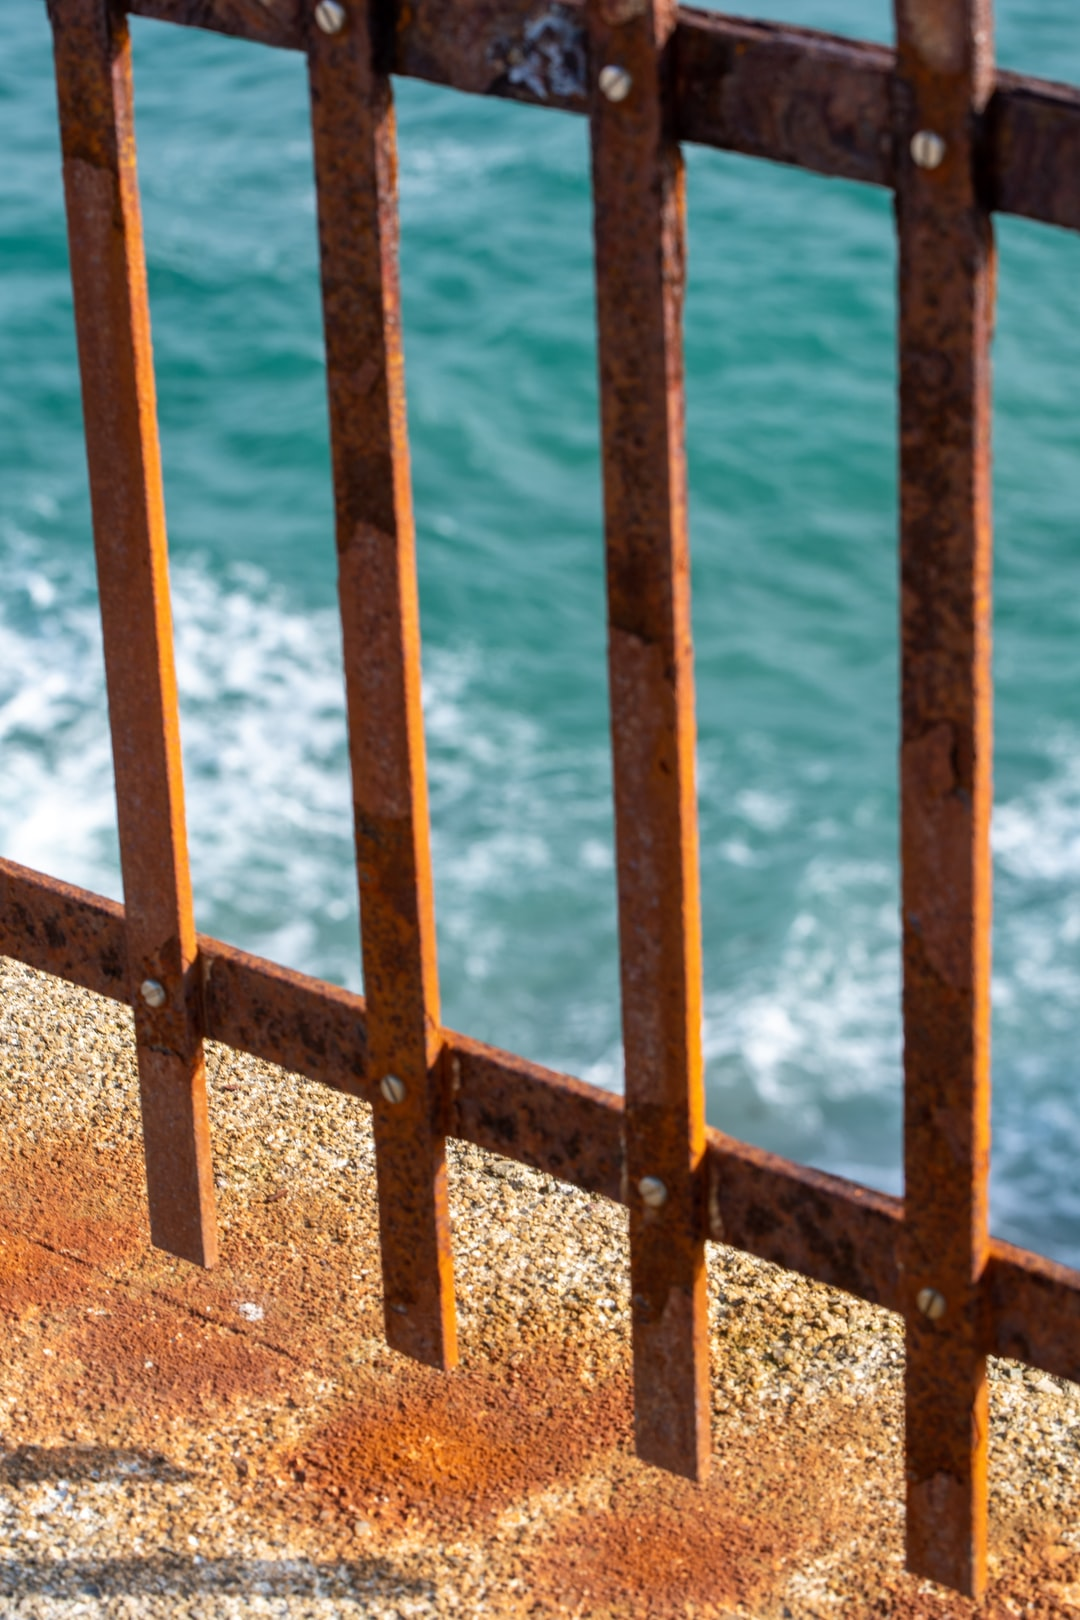 A rusty gate in front of the blue ocean in Cornwall, UK.